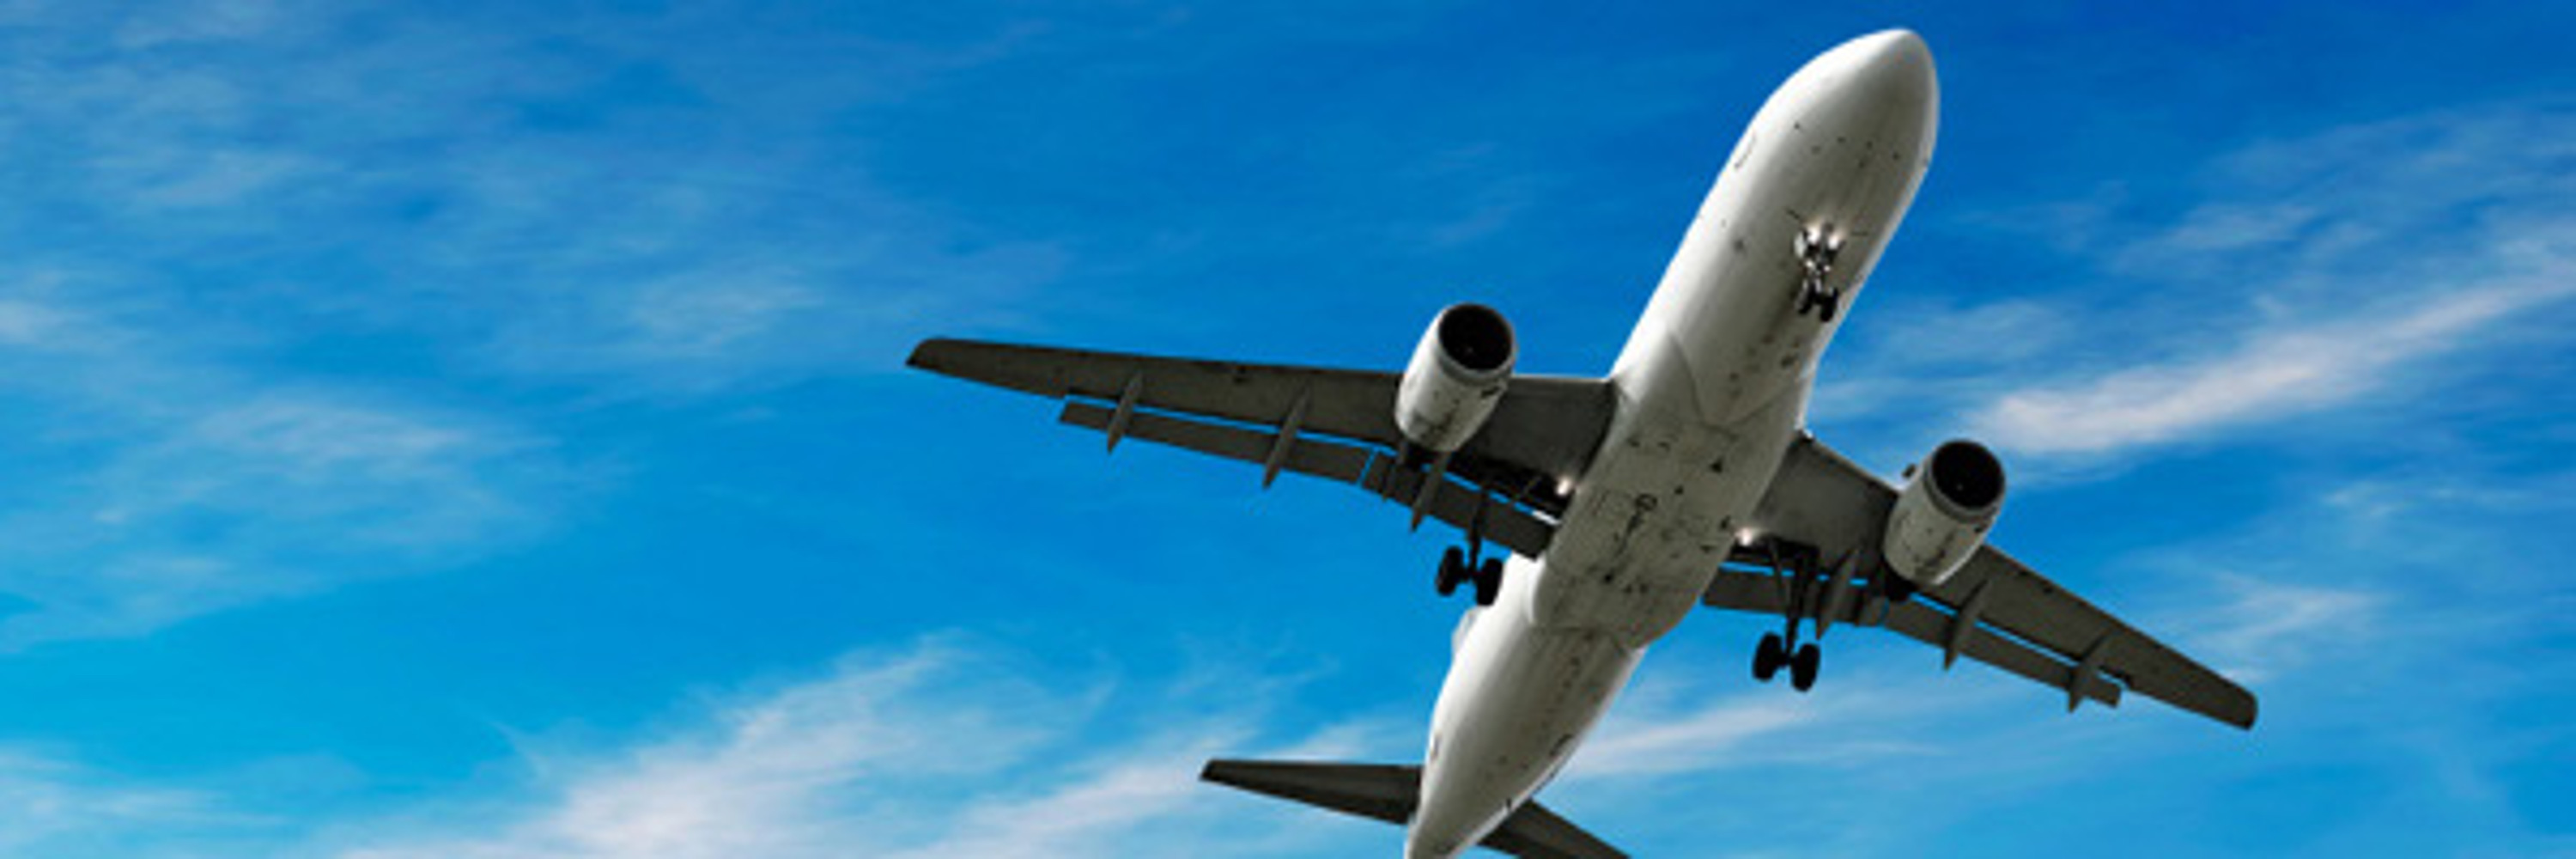 Aviation Regulation and Commercial Matters